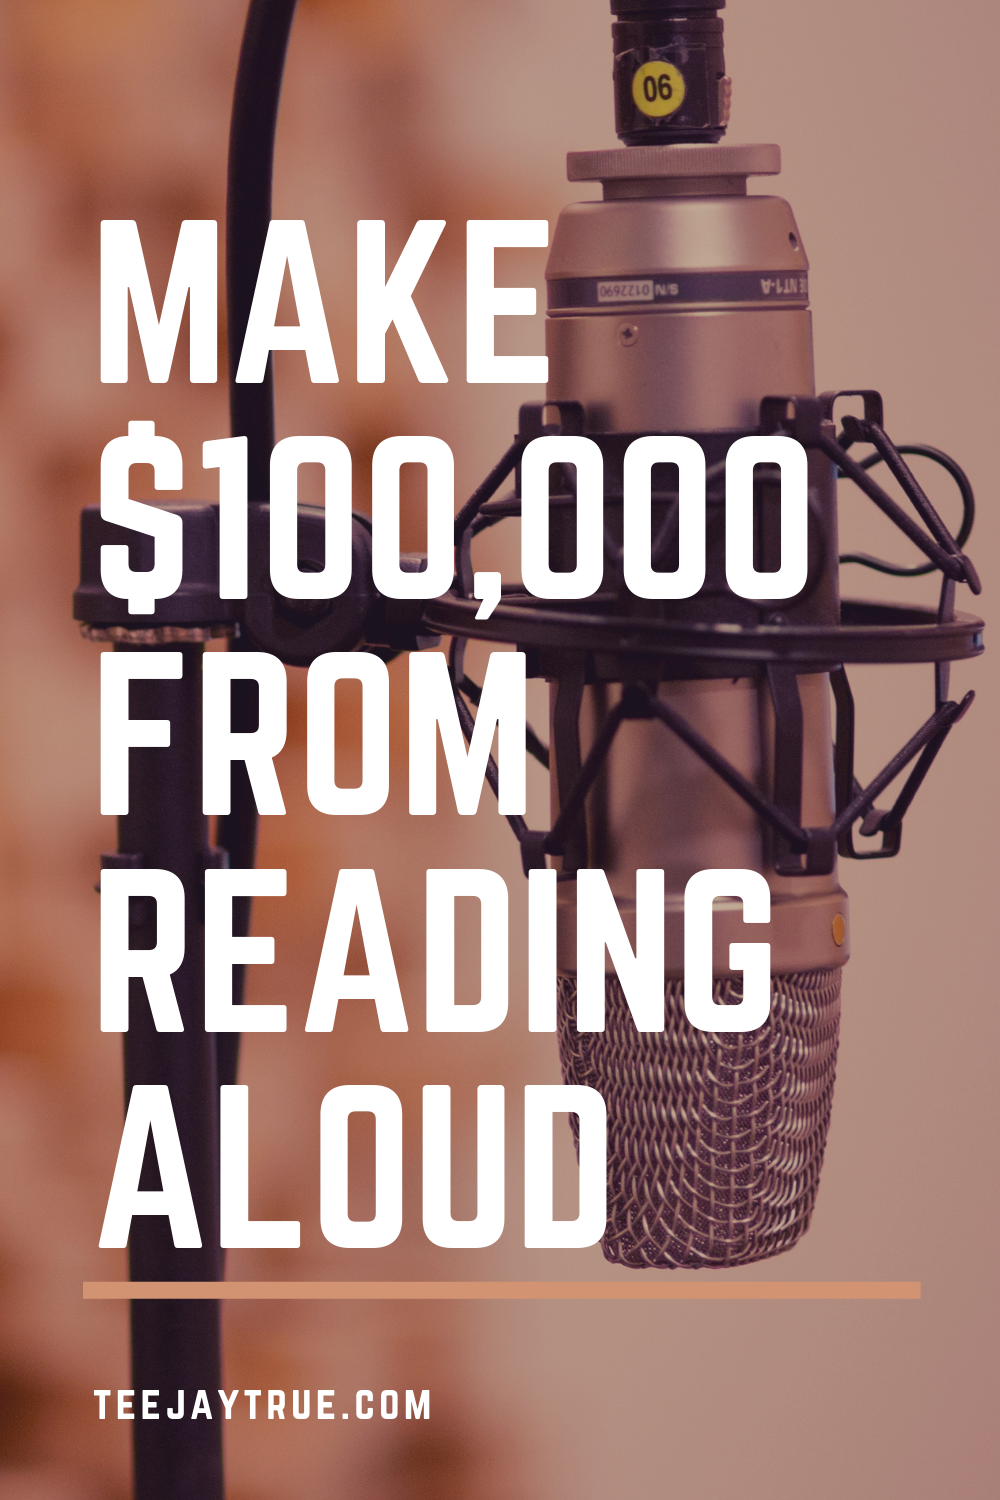 Make $100,000 from reading aloud - Generational We